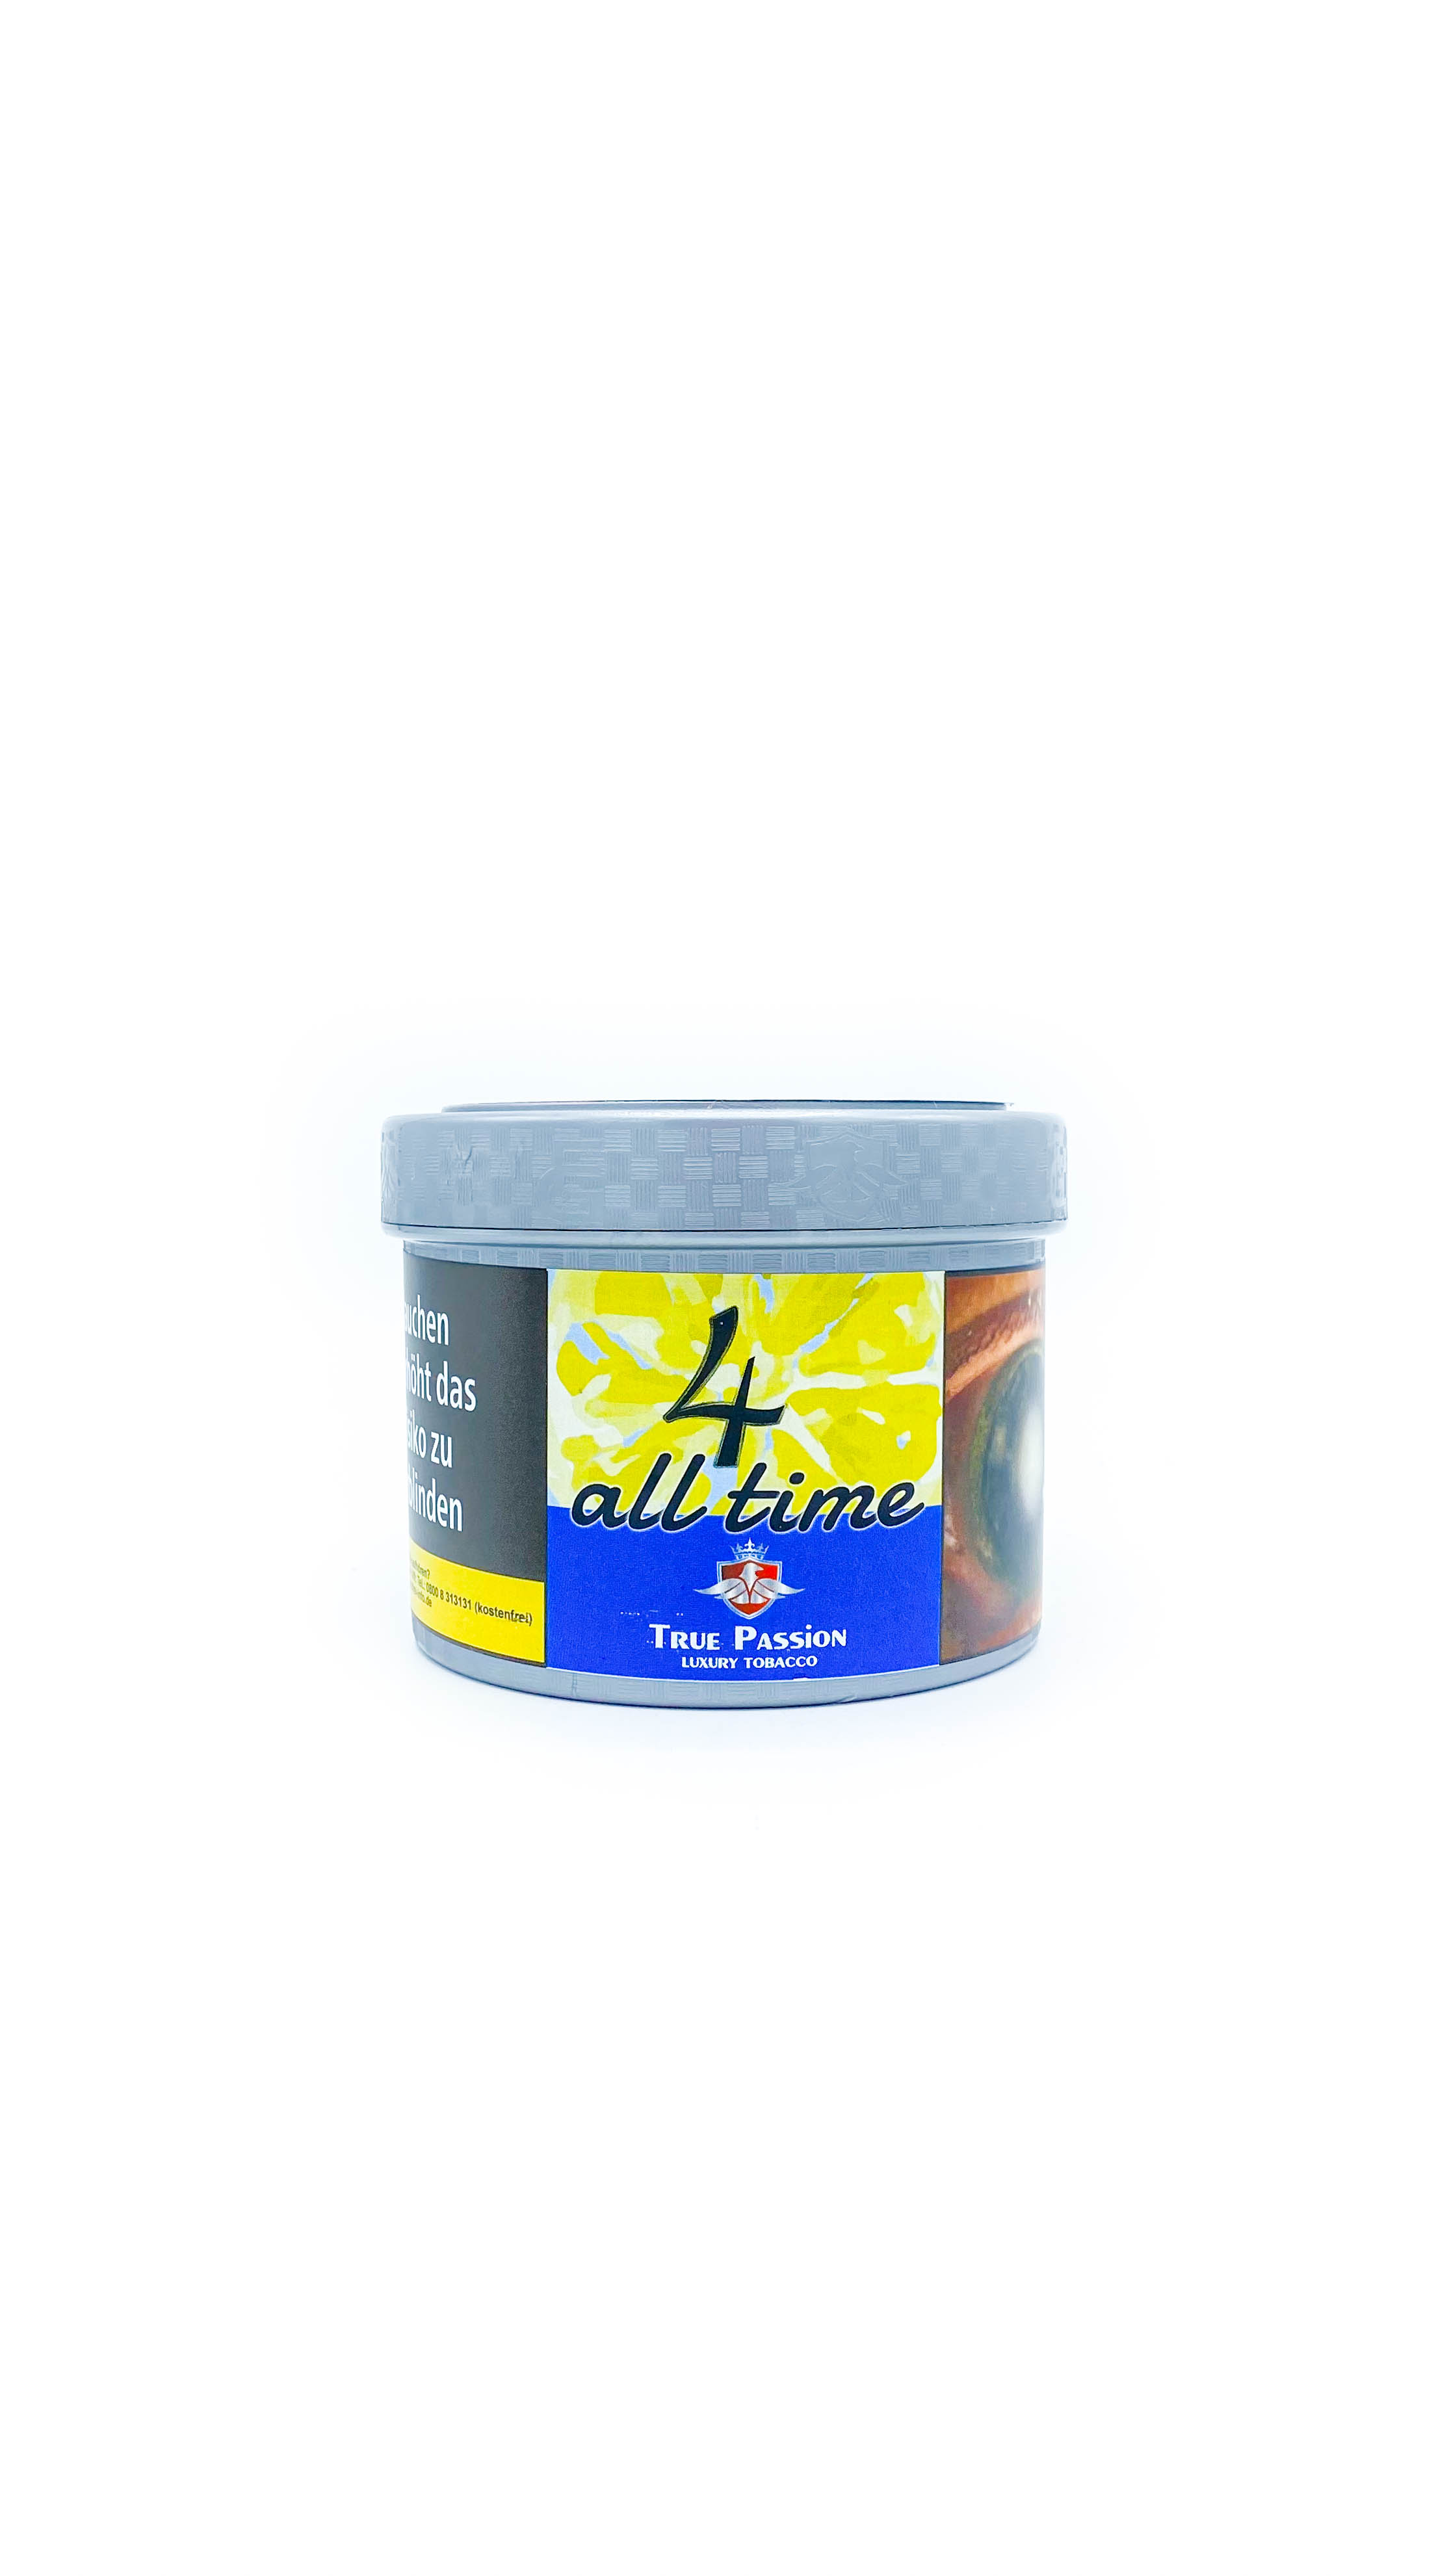 True Passion Tobacco - 4 All Time 200g